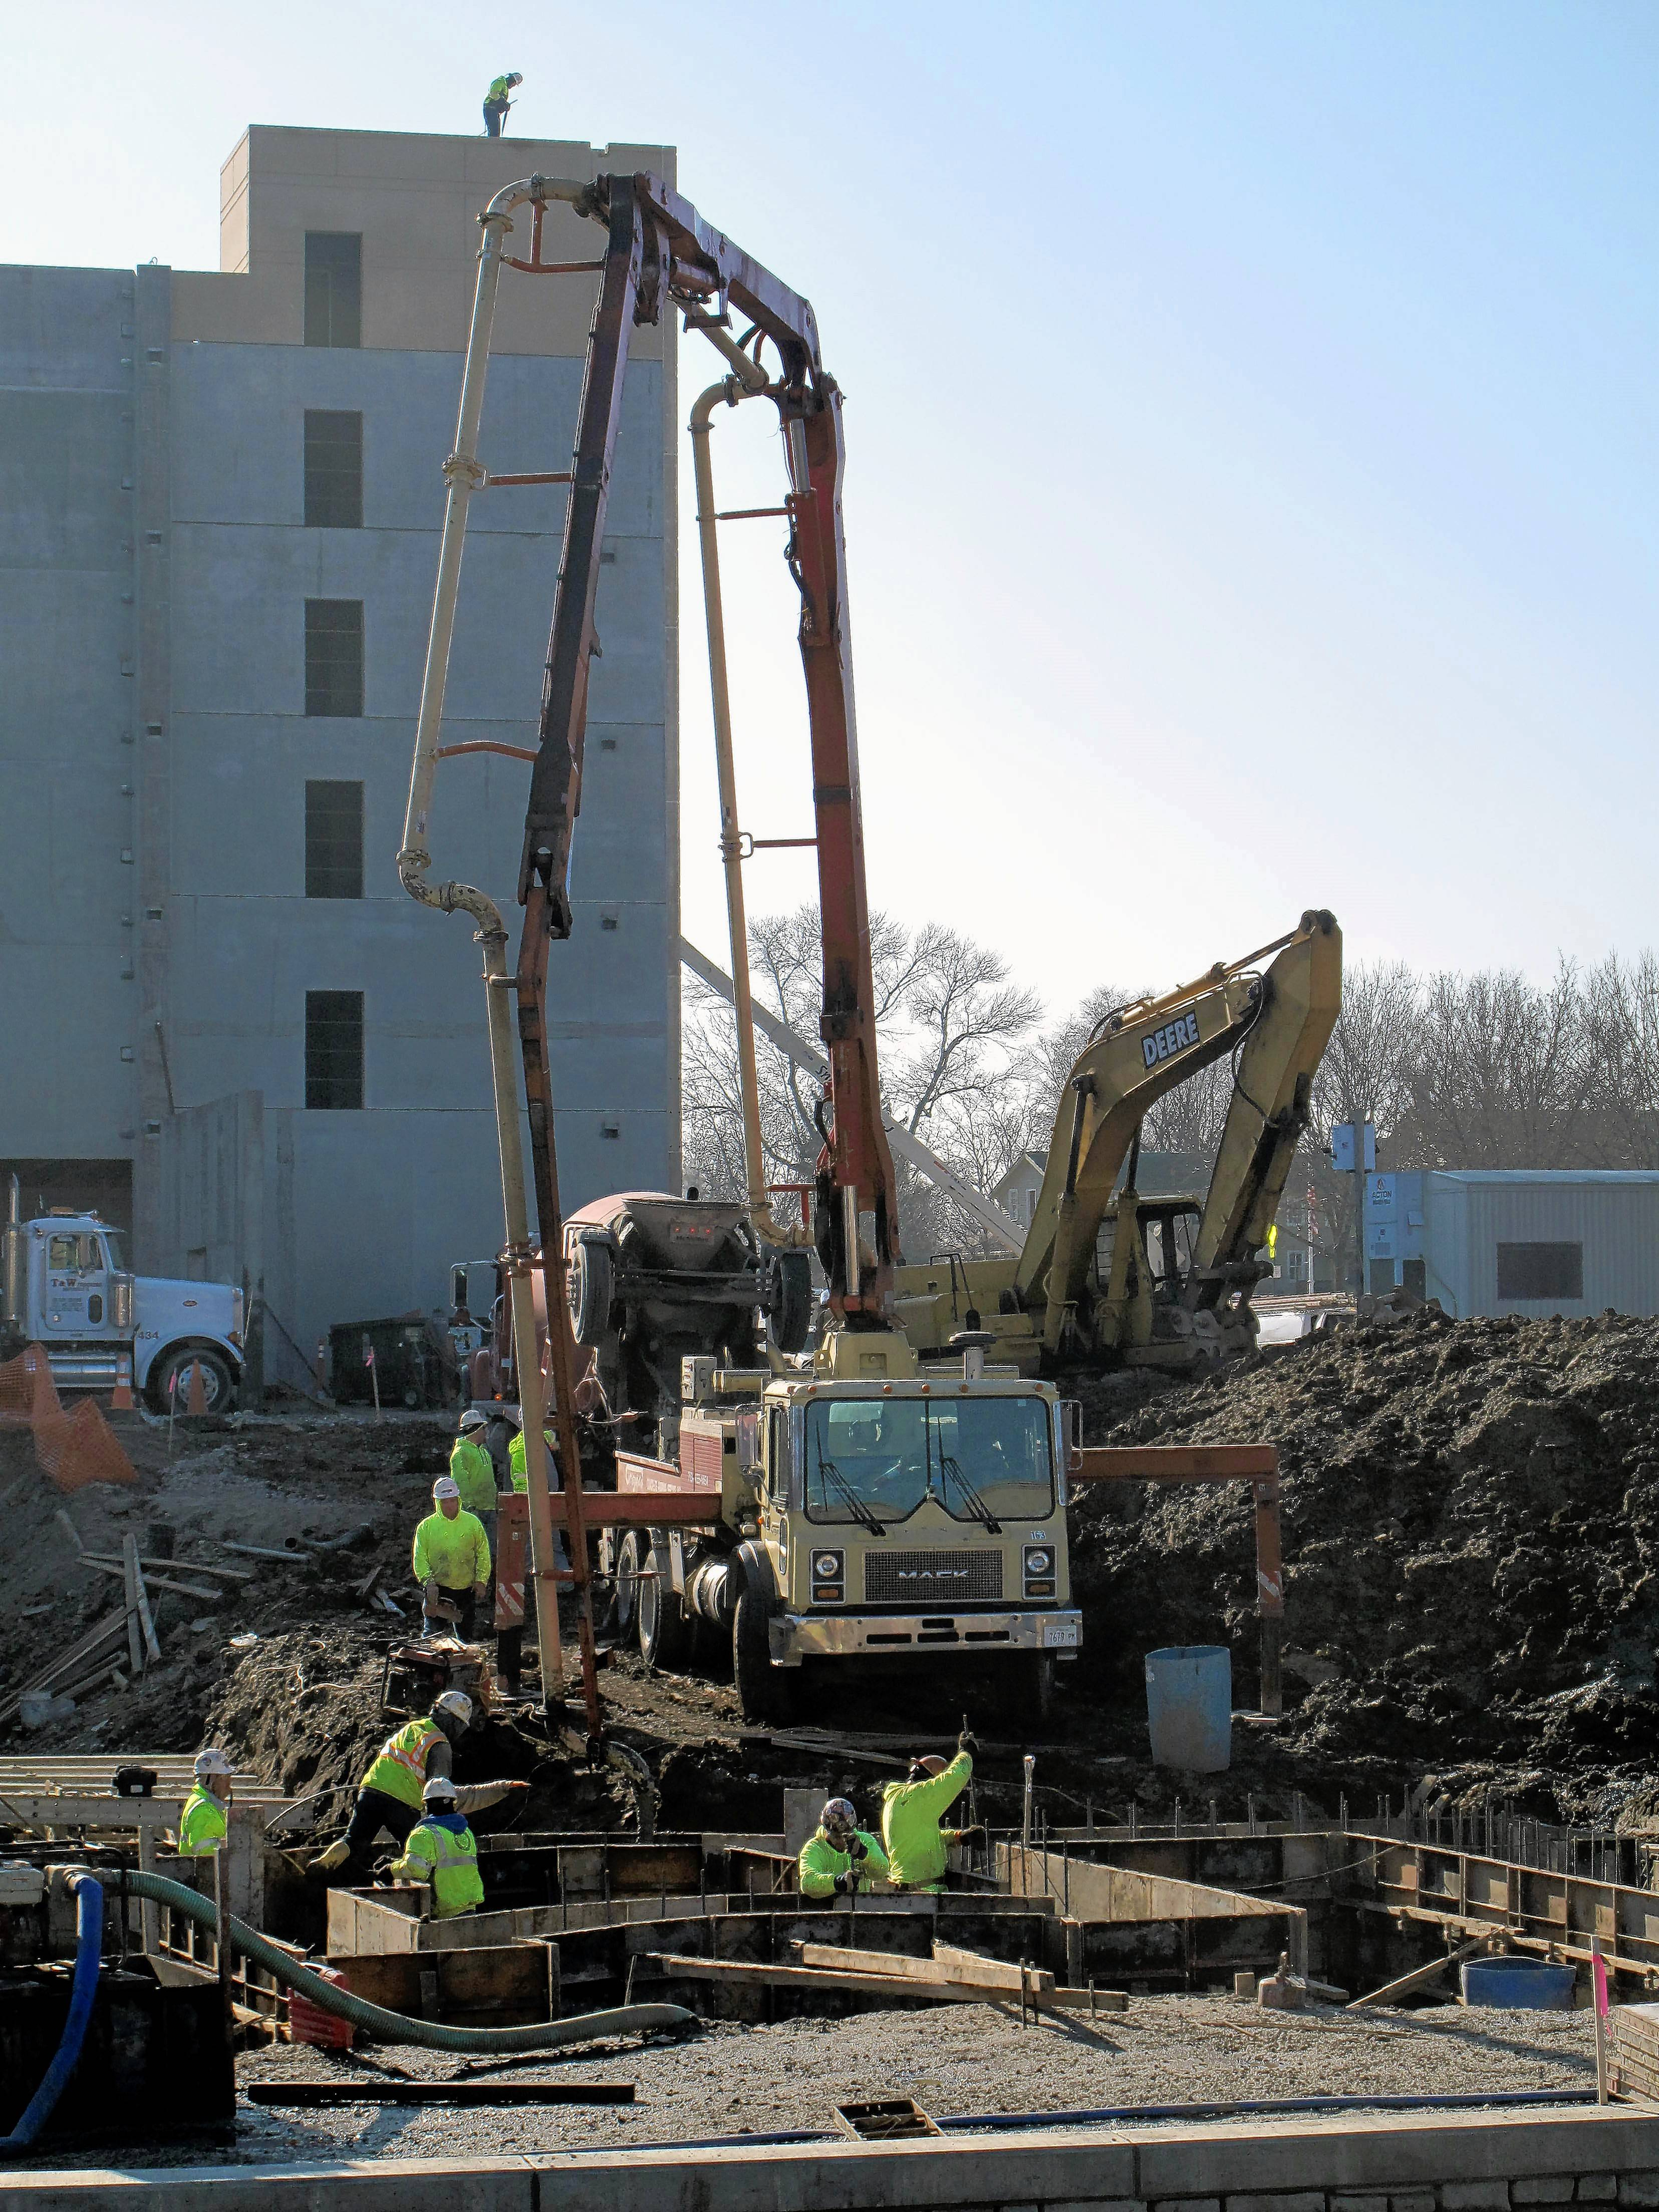 Workers dig the foundation for one of the buildings of the Water Street District in downtown Naperville.